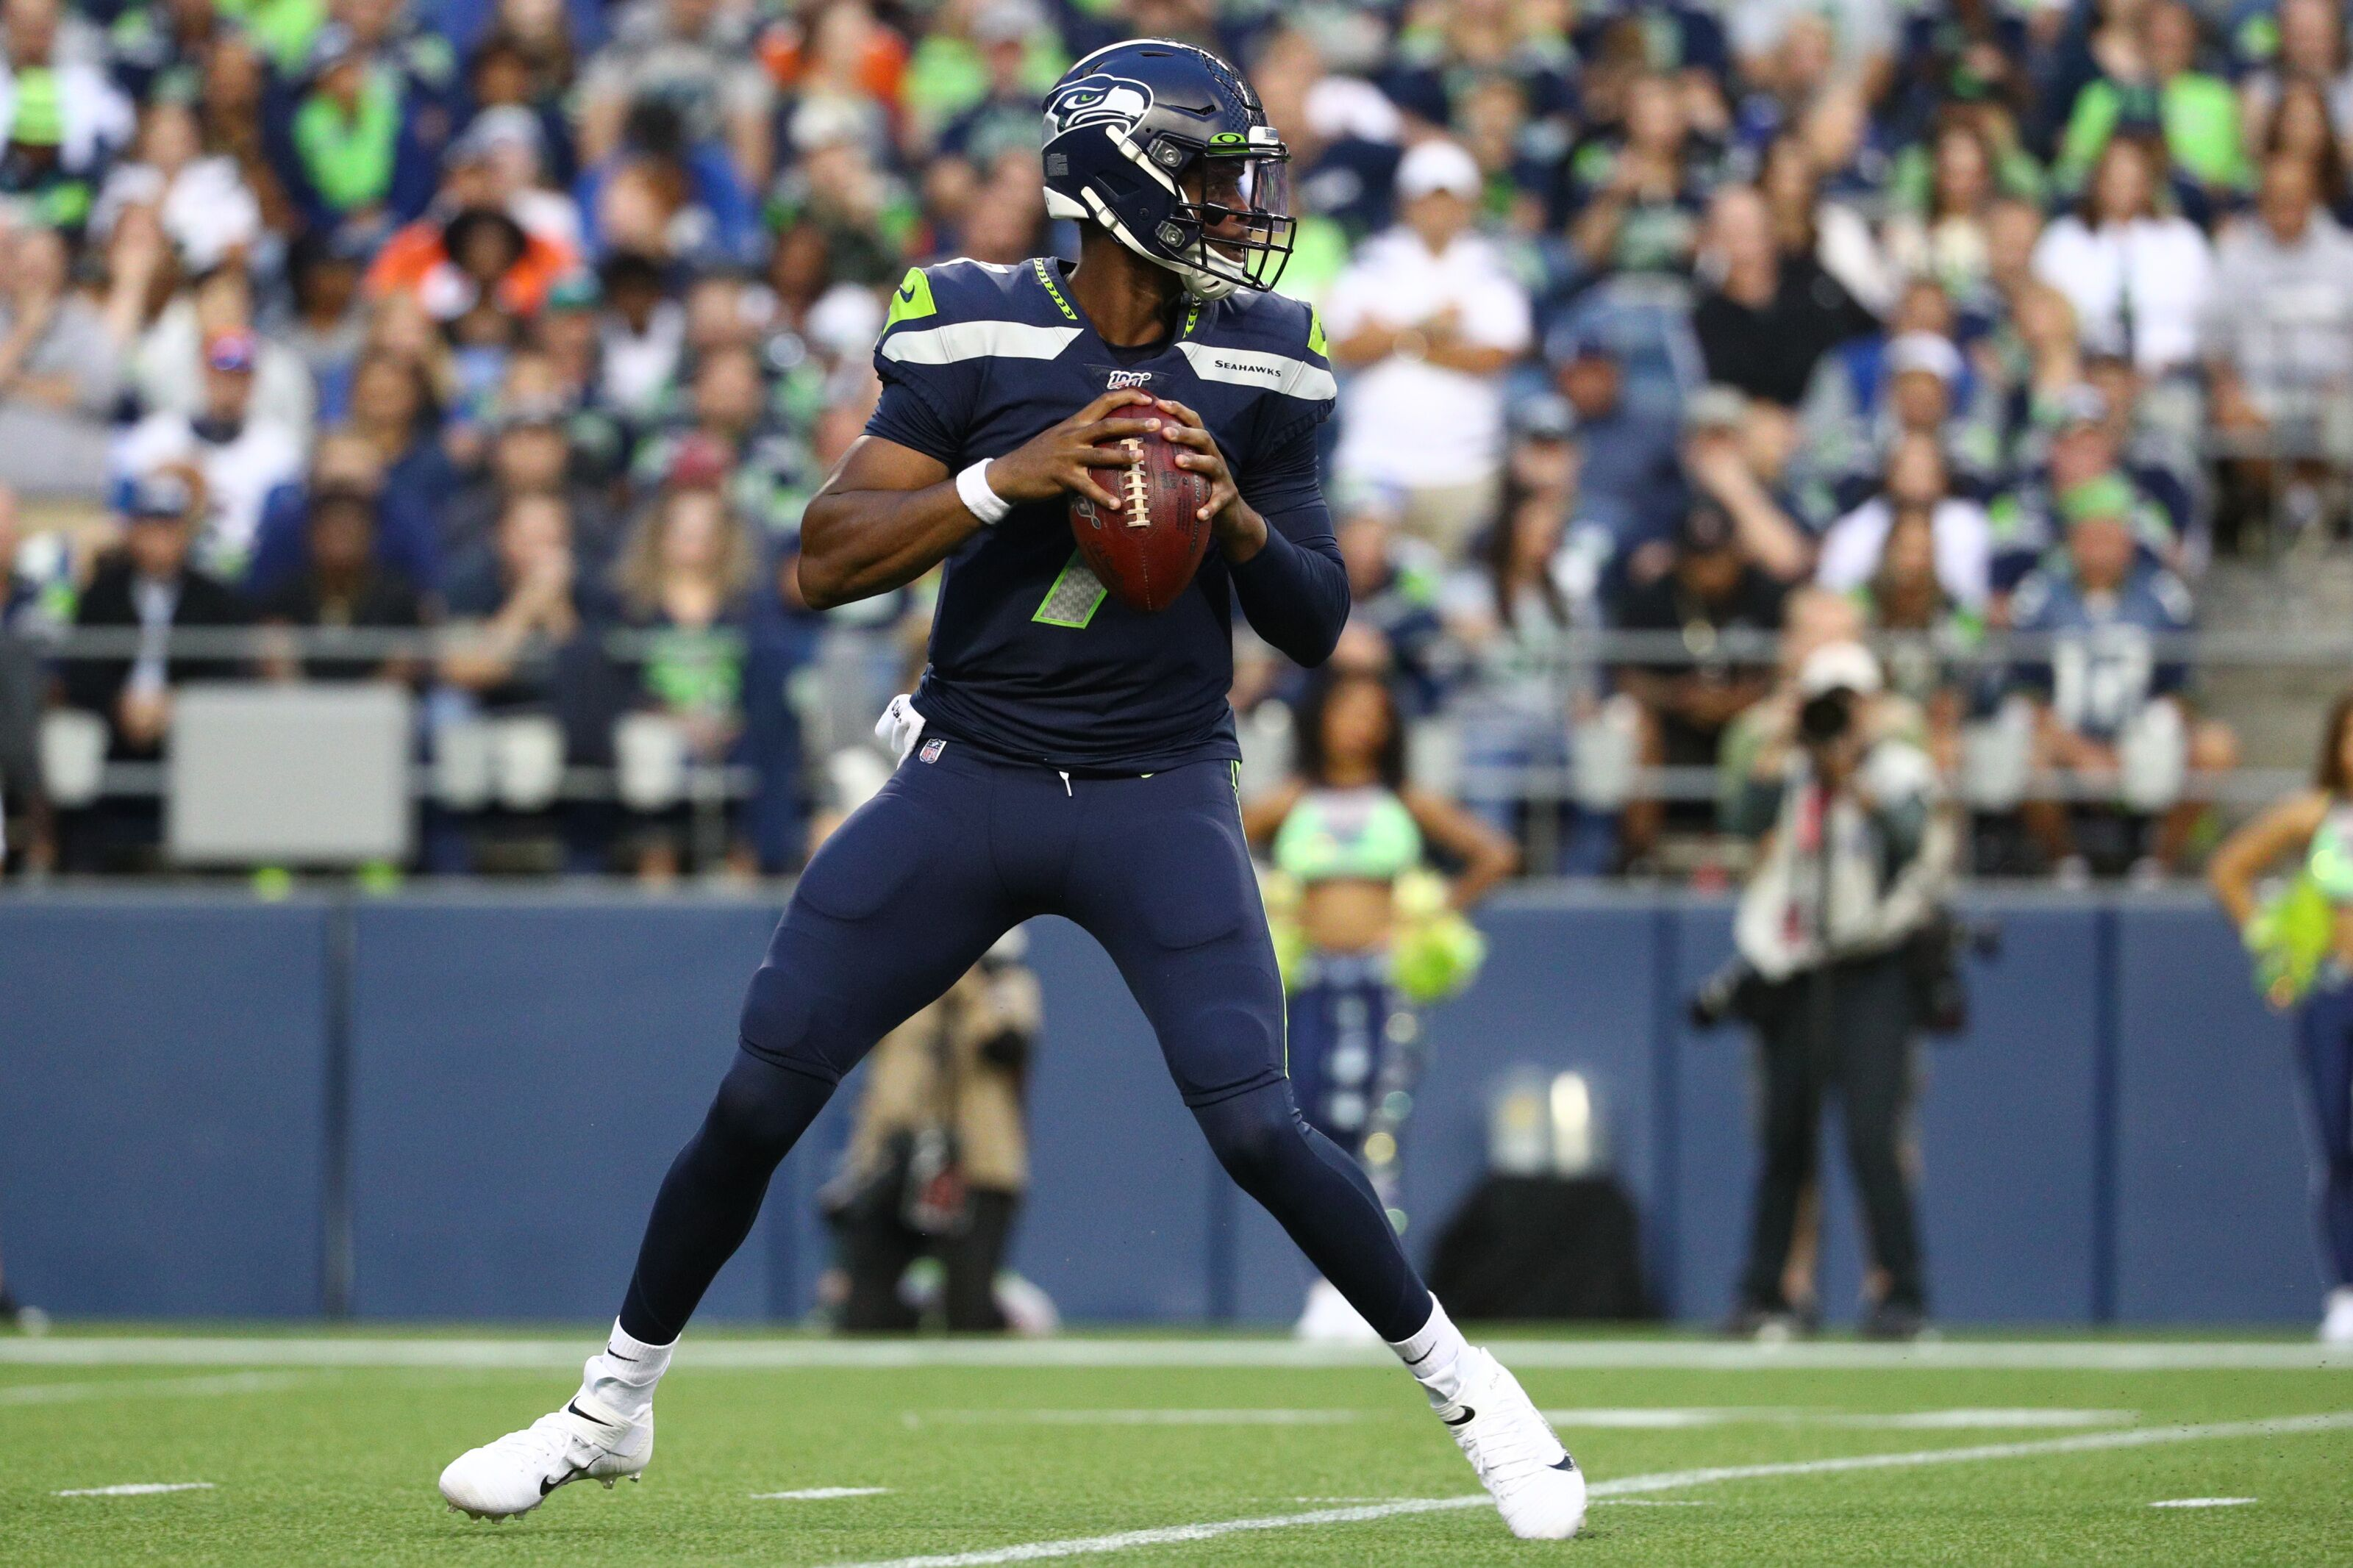 He's now one of my favorite Seahawks and I hope he never takes a snap